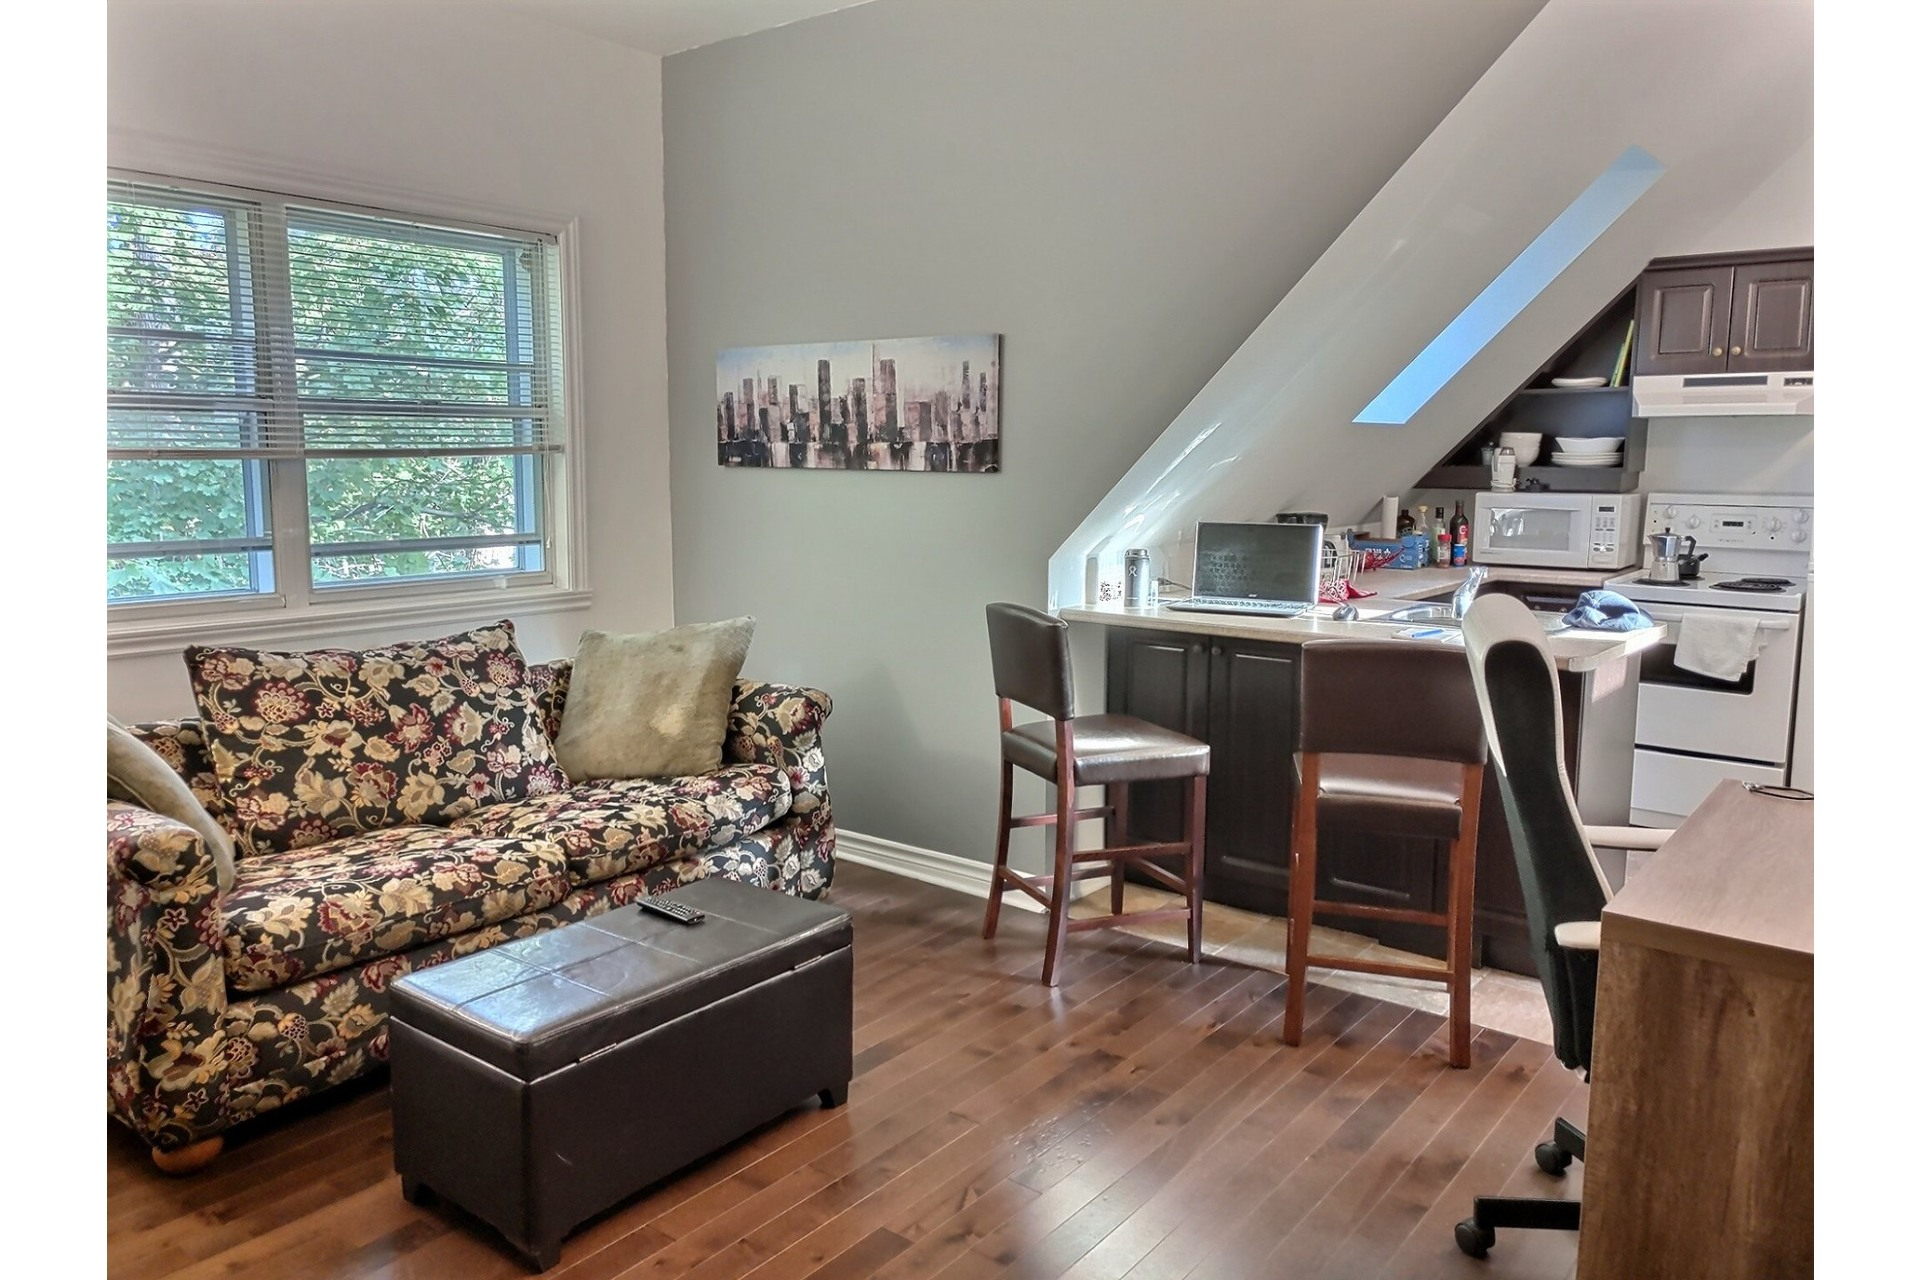 image 6 - Apartment For rent Dorval - 4 rooms